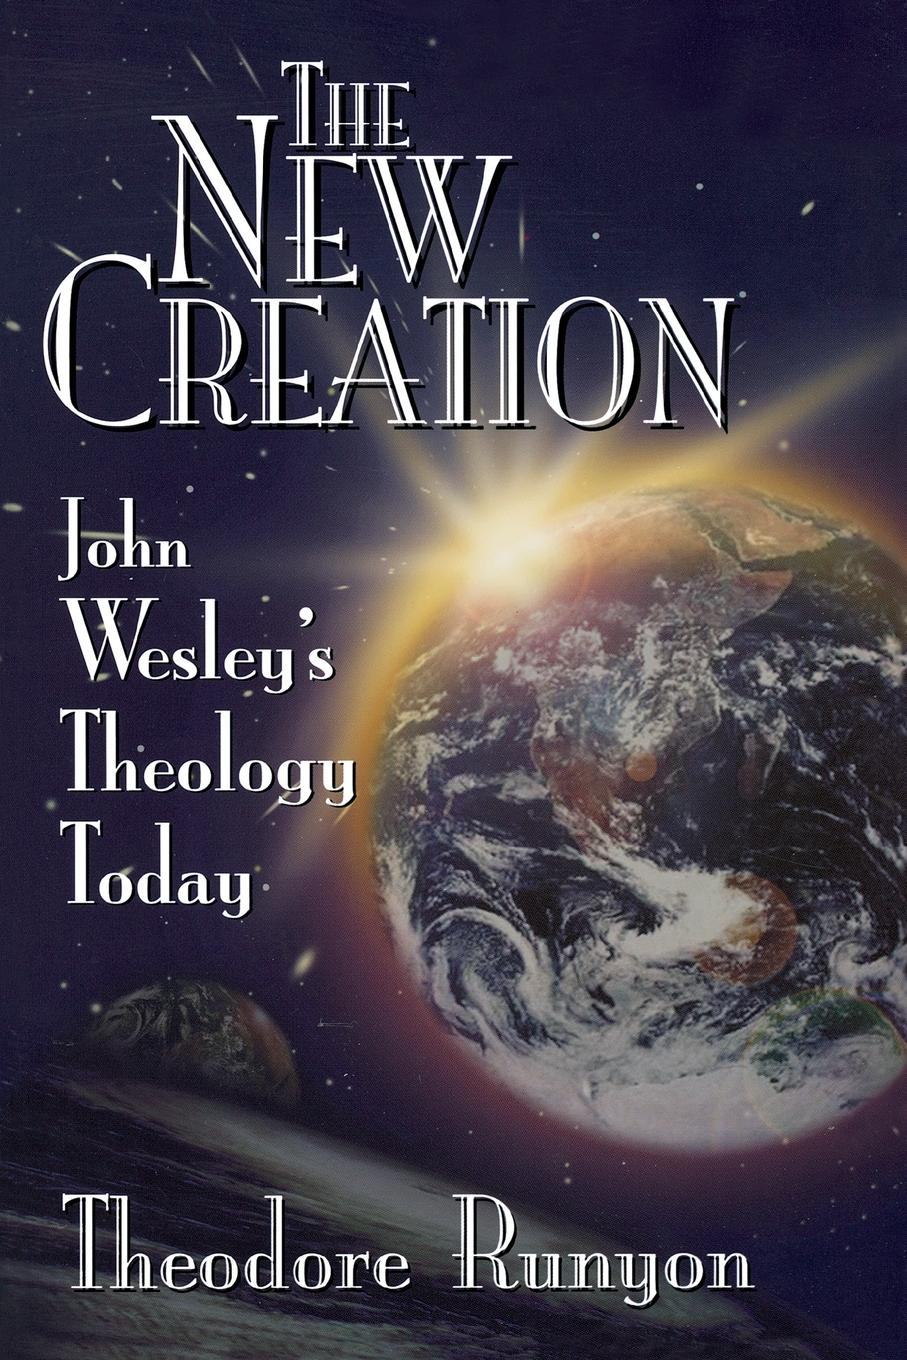 The New Creation: John Wesley's Theology Today  Theodore Runyon  Taschenbuch  Englisch  1998 - Runyon, Theodore